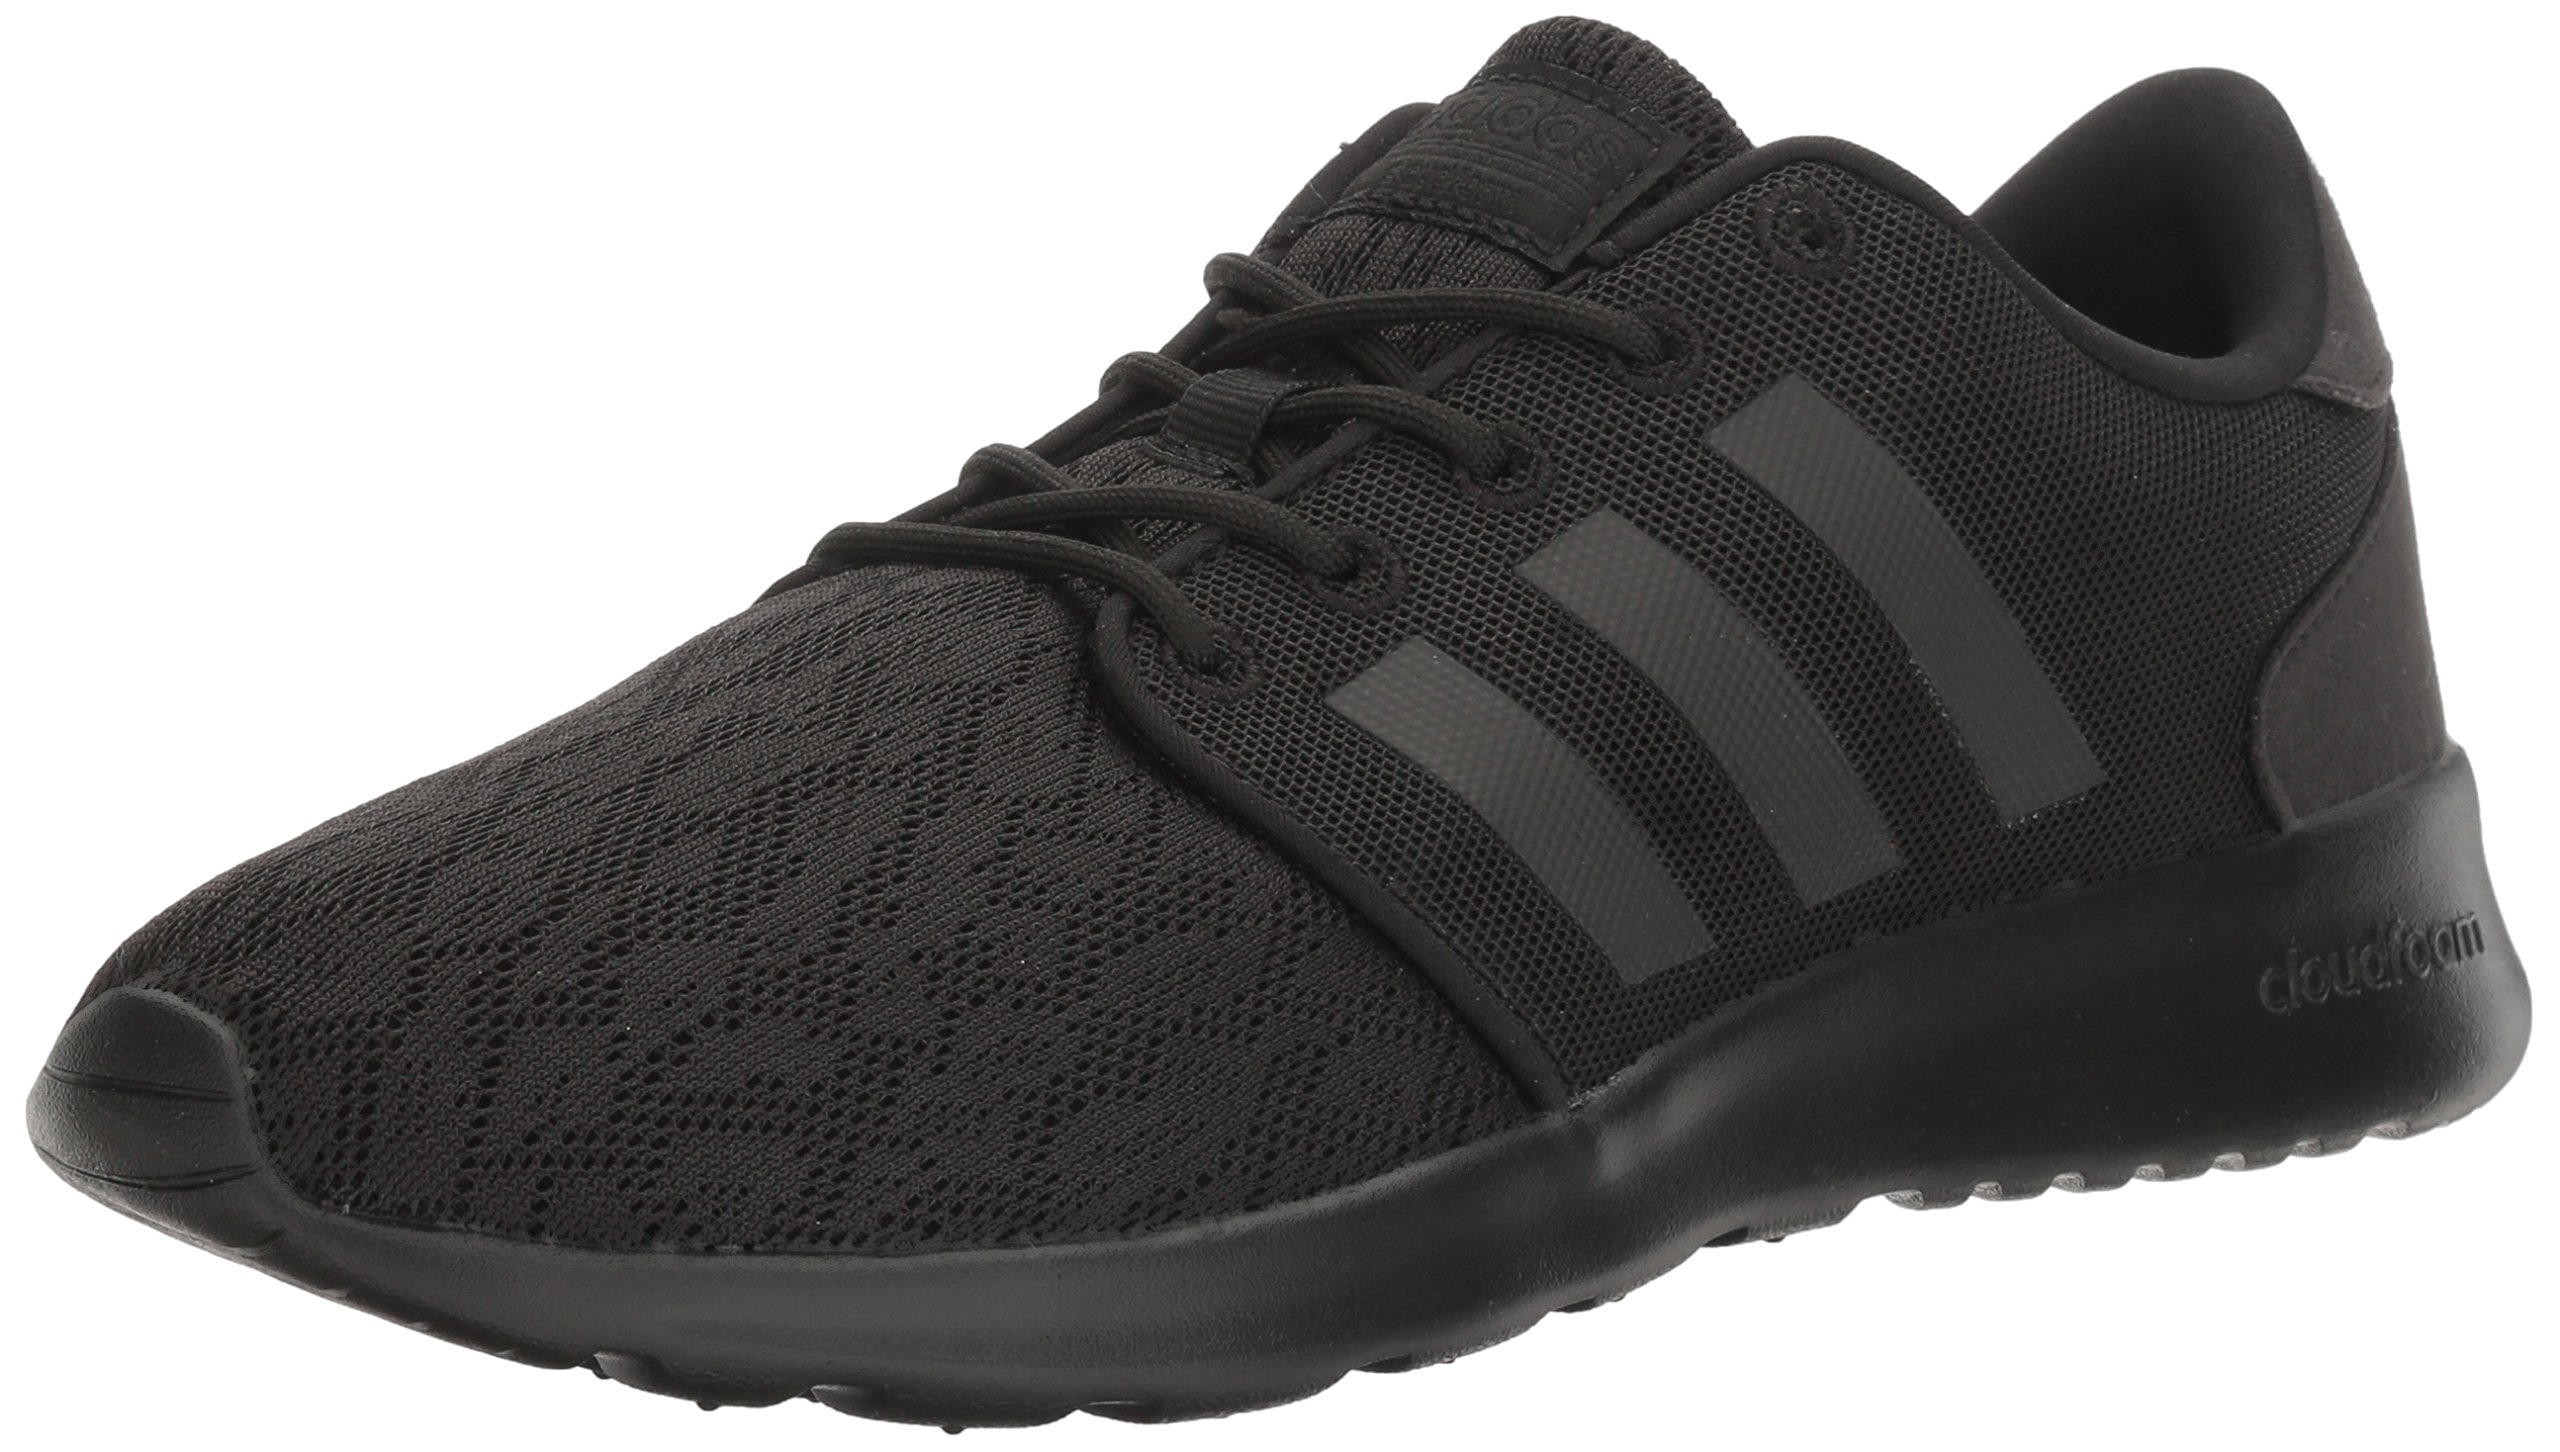 adidas NEO Women's Cloudfoam QT Racer W Running Shoe, Black/Black/White, 7.5 Medium US